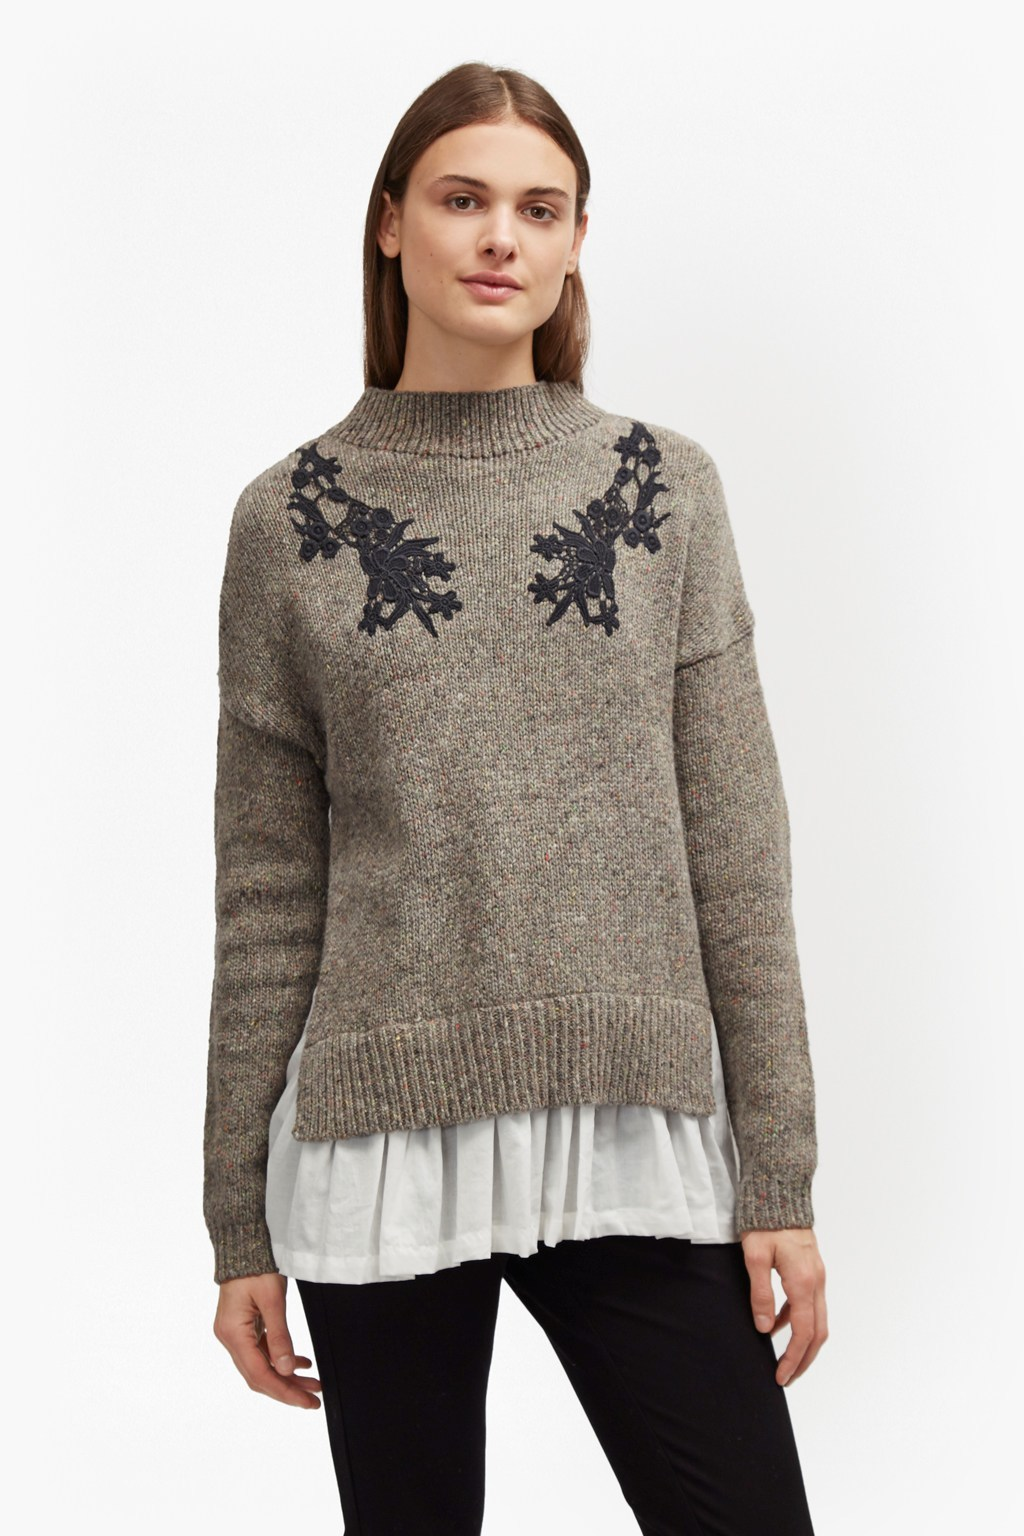 Alice Nep Knit Lace Jumper Oatmeal Melange - neckline: high neck; style: standard; predominant colour: stone; occasions: casual; length: standard; fibres: wool - mix; fit: standard fit; sleeve length: long sleeve; sleeve style: standard; texture group: knits/crochet; pattern type: knitted - other; pattern: patterned/print; embellishment: lace; season: a/w 2016; wardrobe: highlight